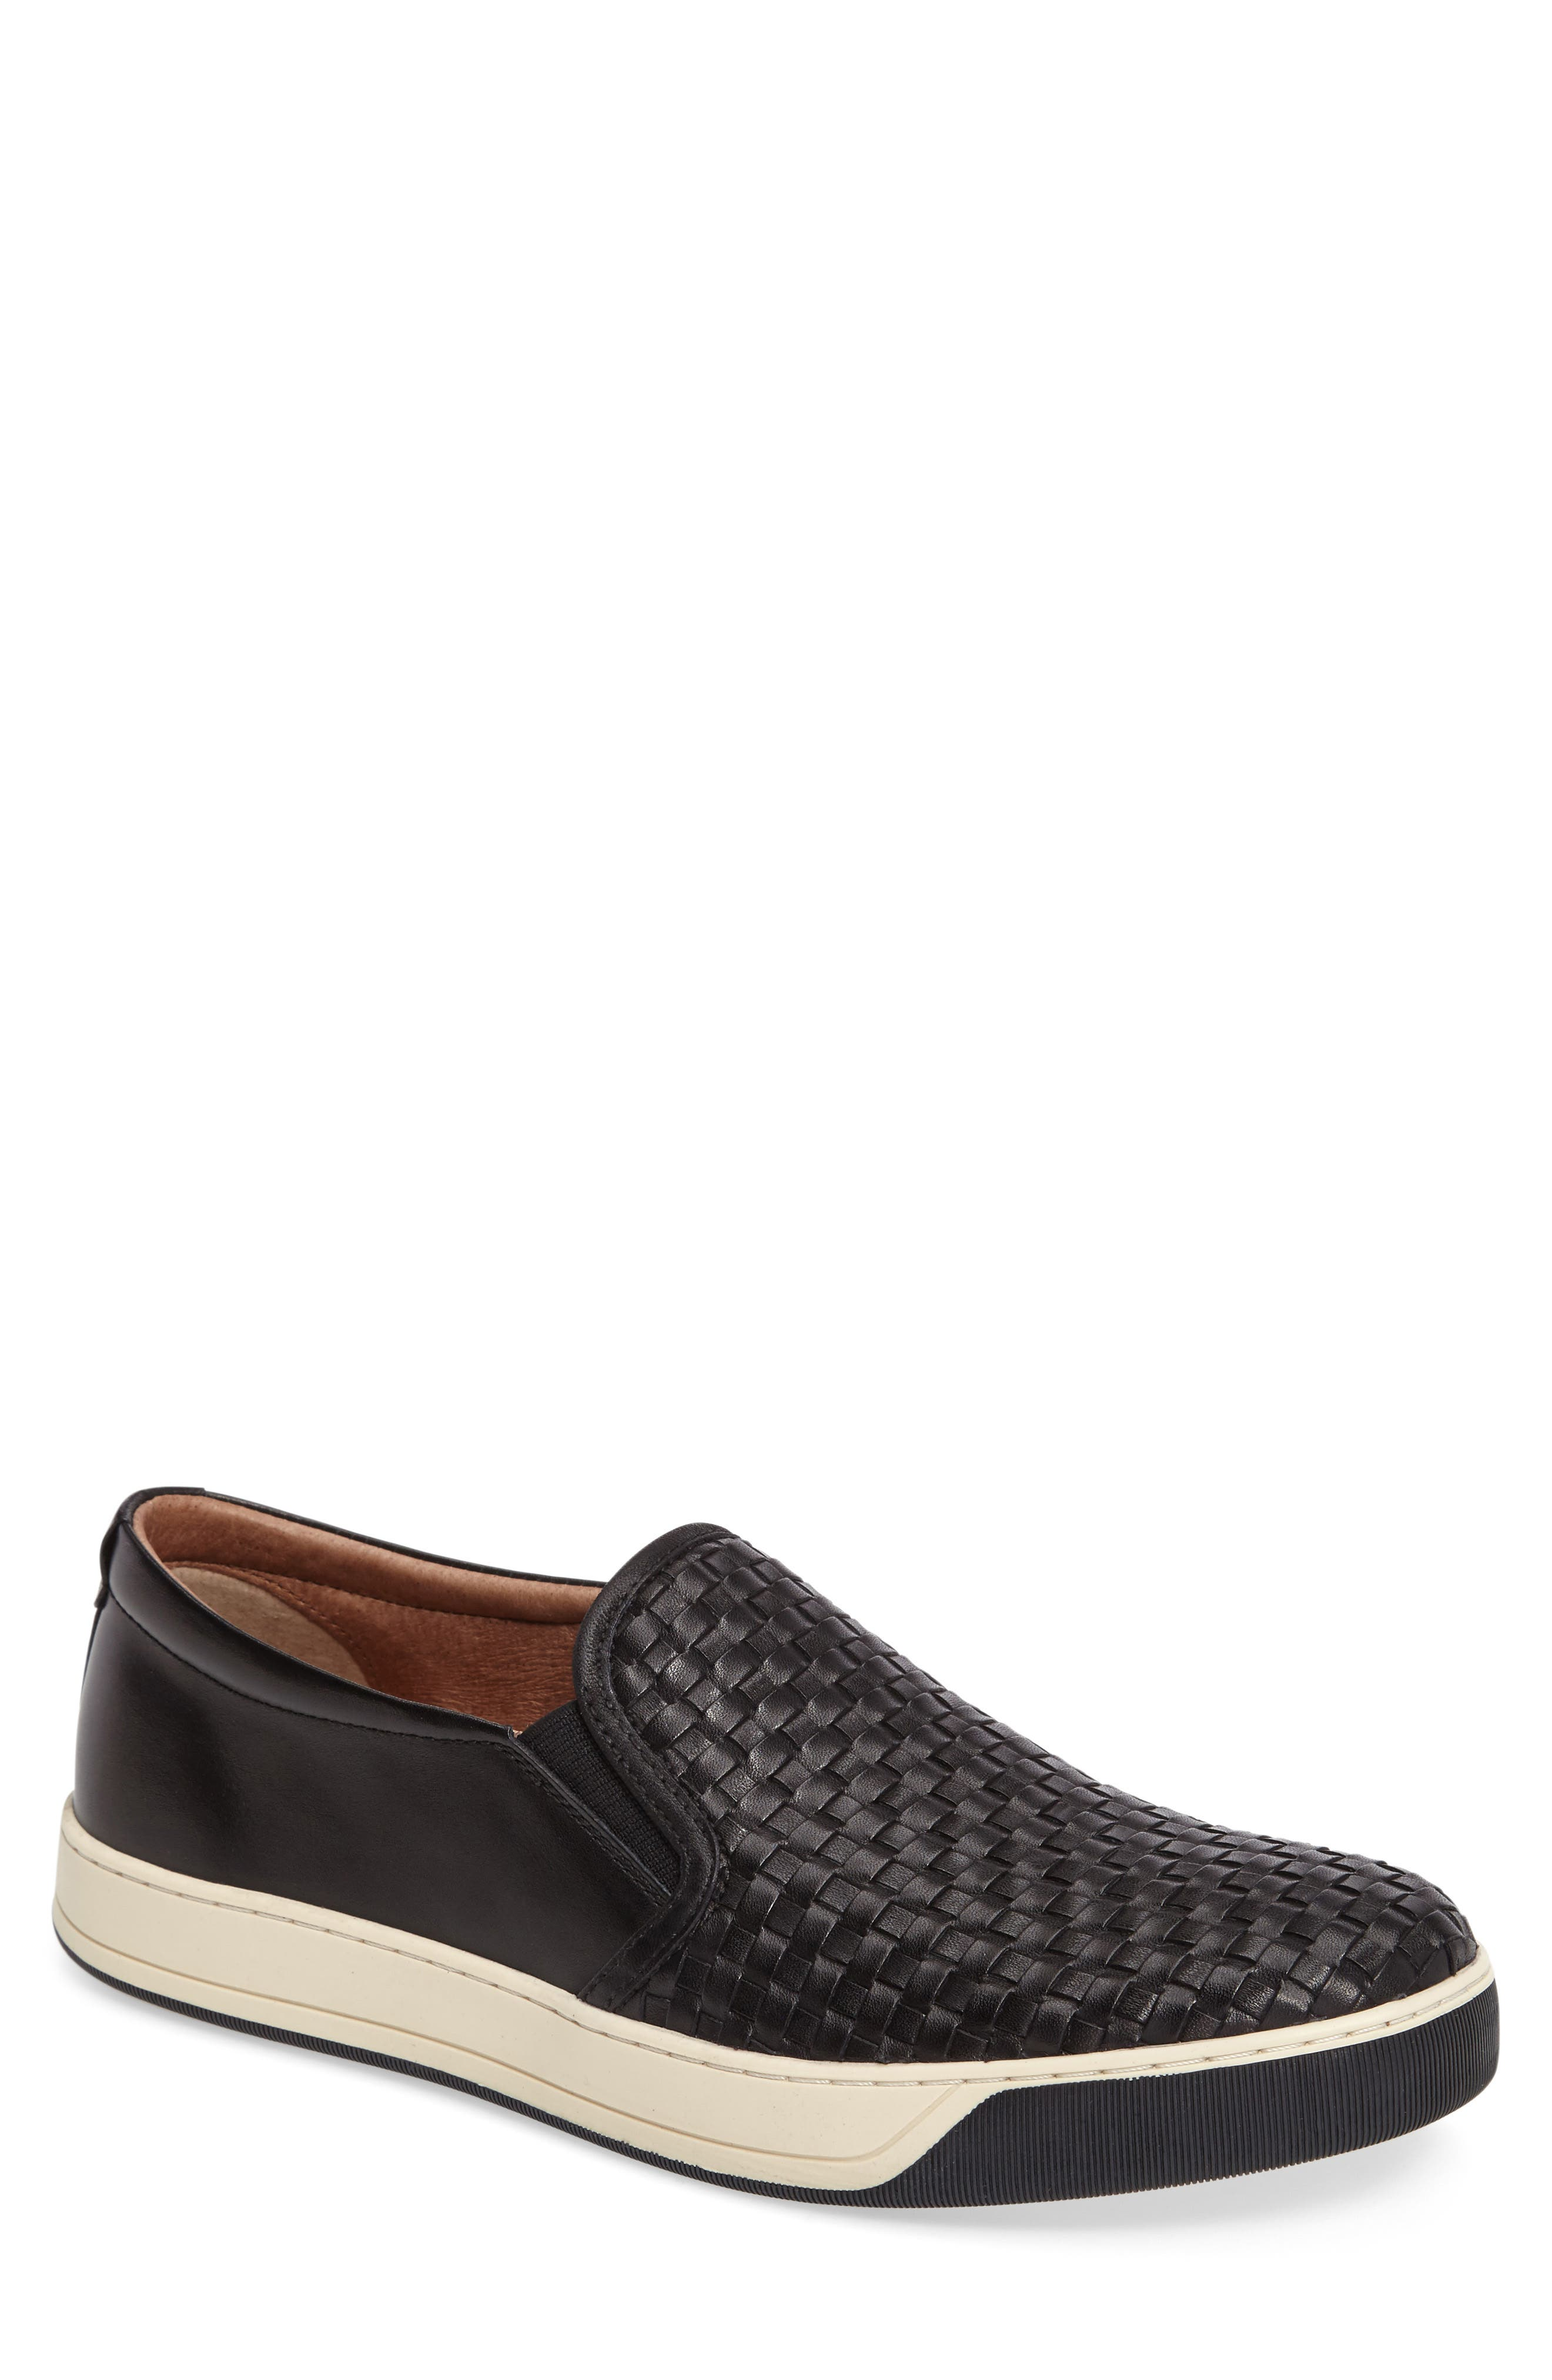 J&M 1850, Allister Slip-On Sneaker, Main thumbnail 1, color, BLACK LEATHER